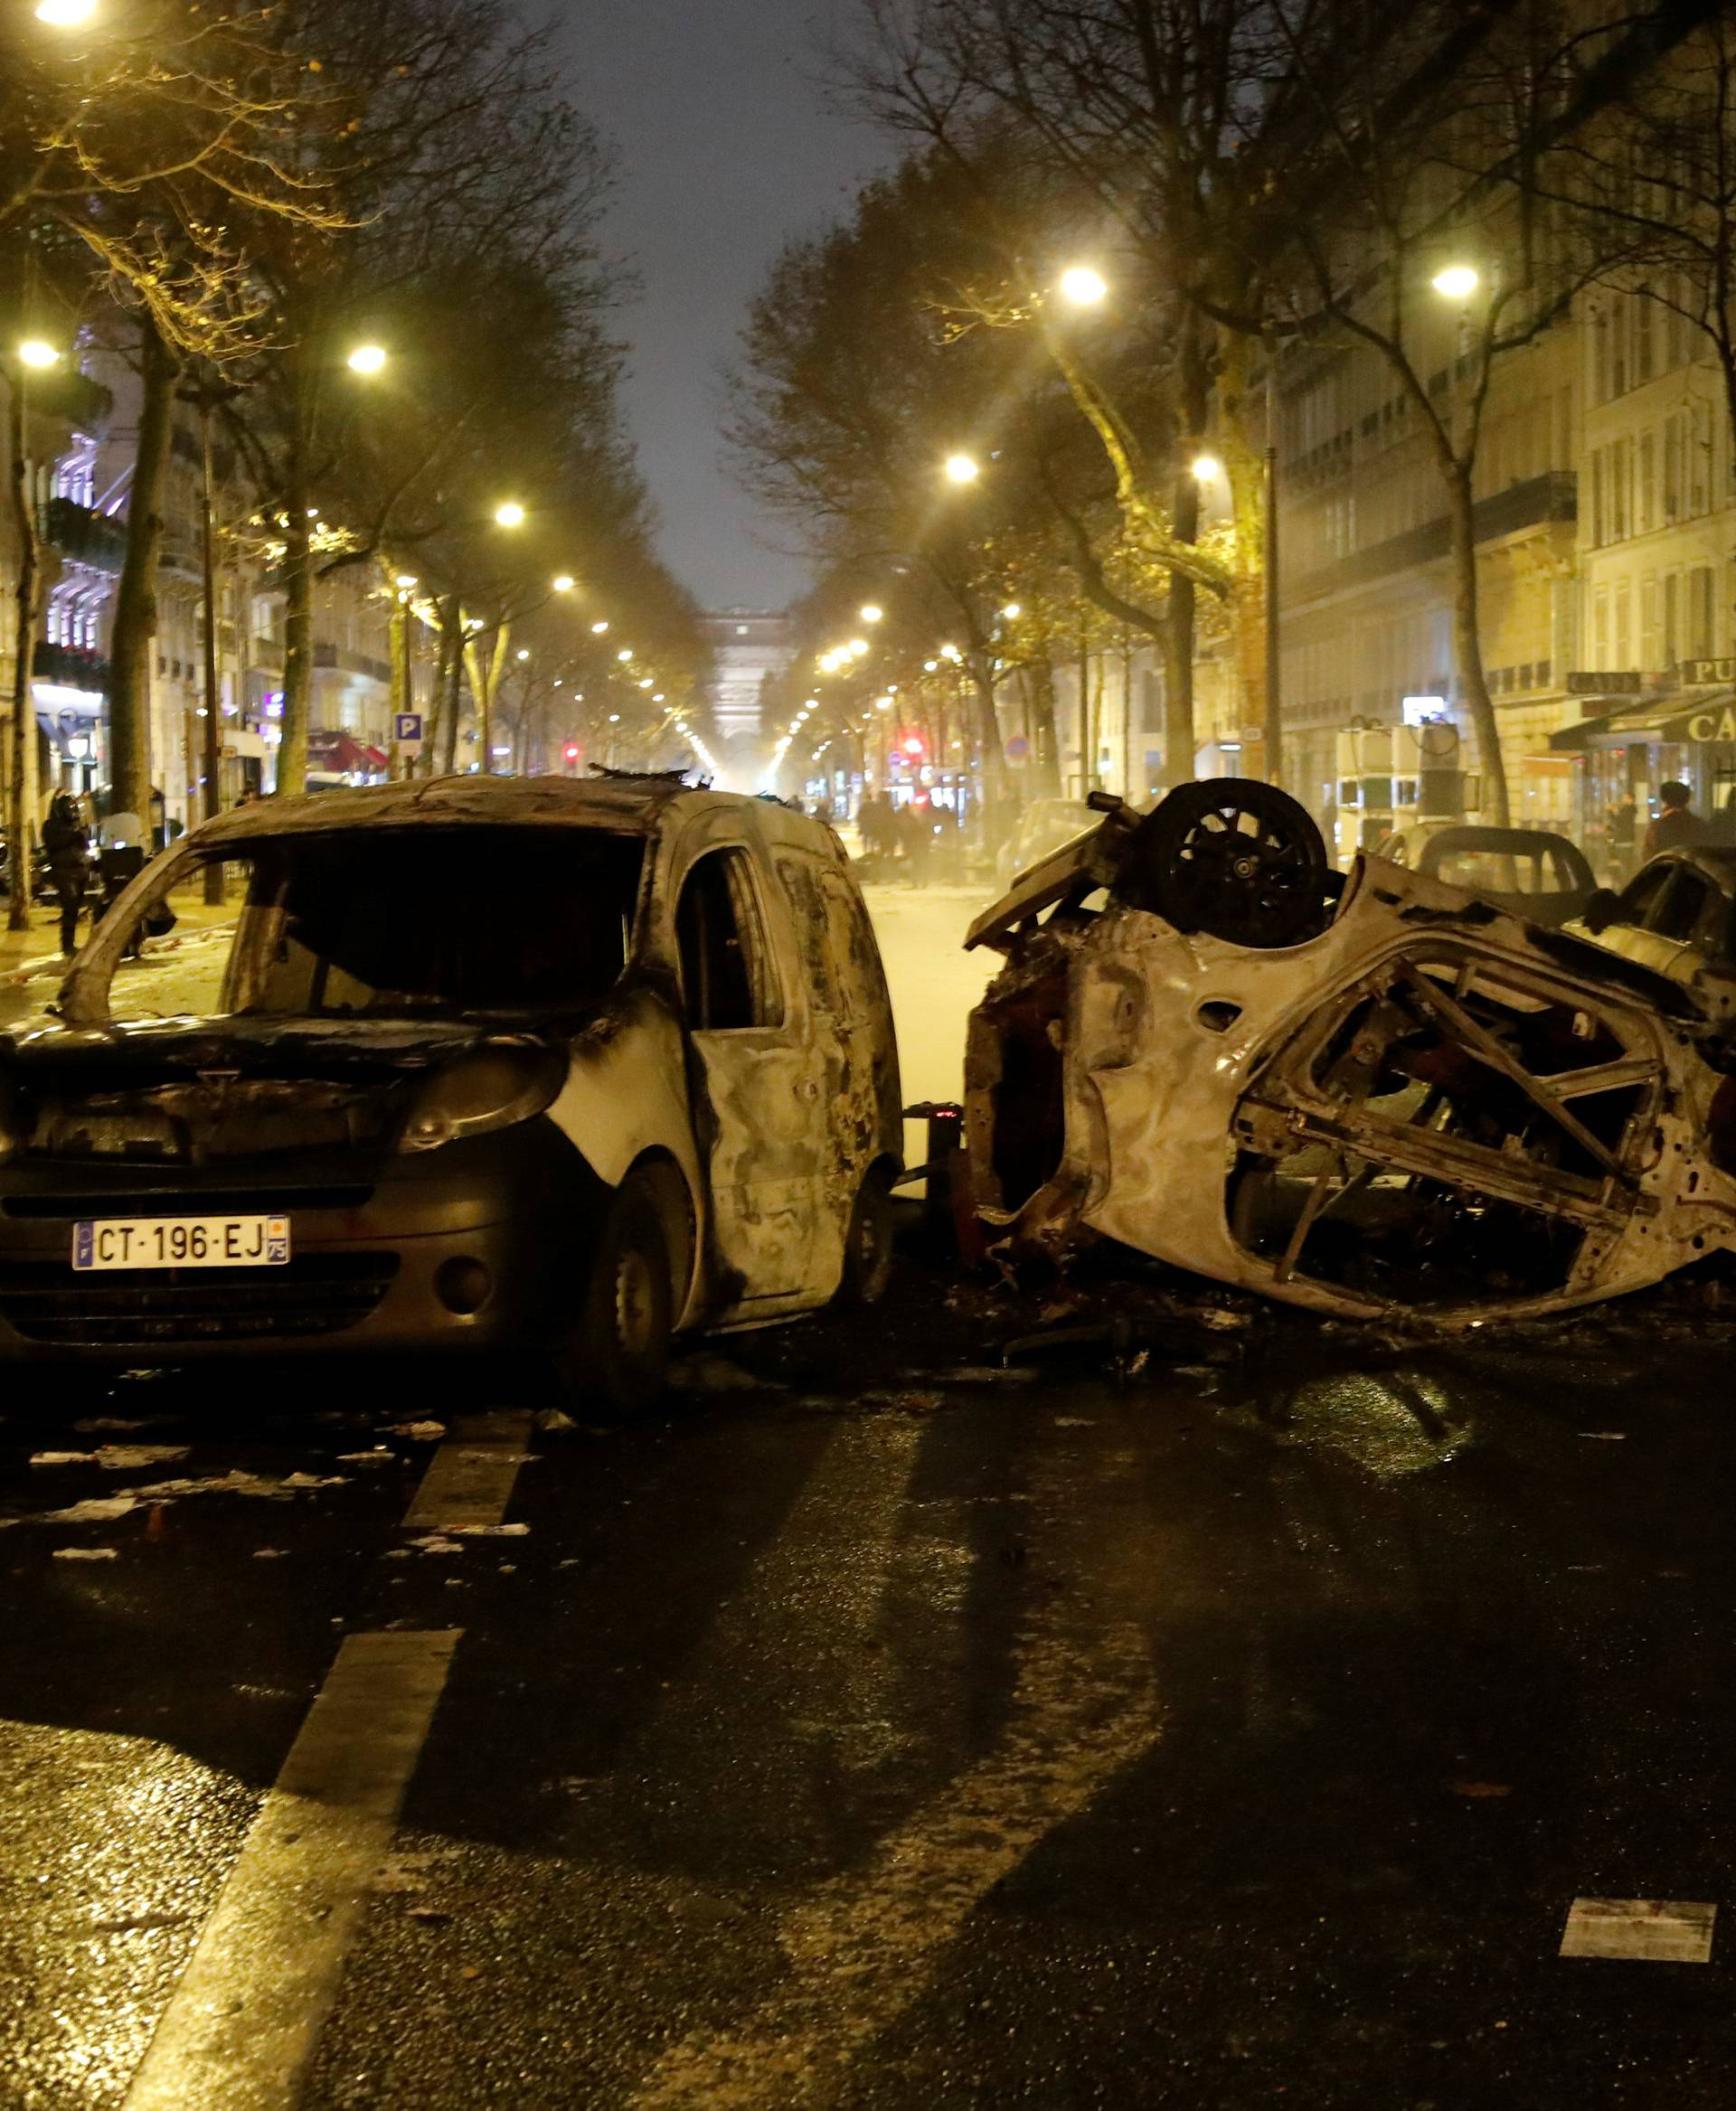 Burned cars are seen on avenue Kleber after clashes with protesters wearing yellow vests, a symbol of a French drivers' protest against higher diesel taxes, in Paris